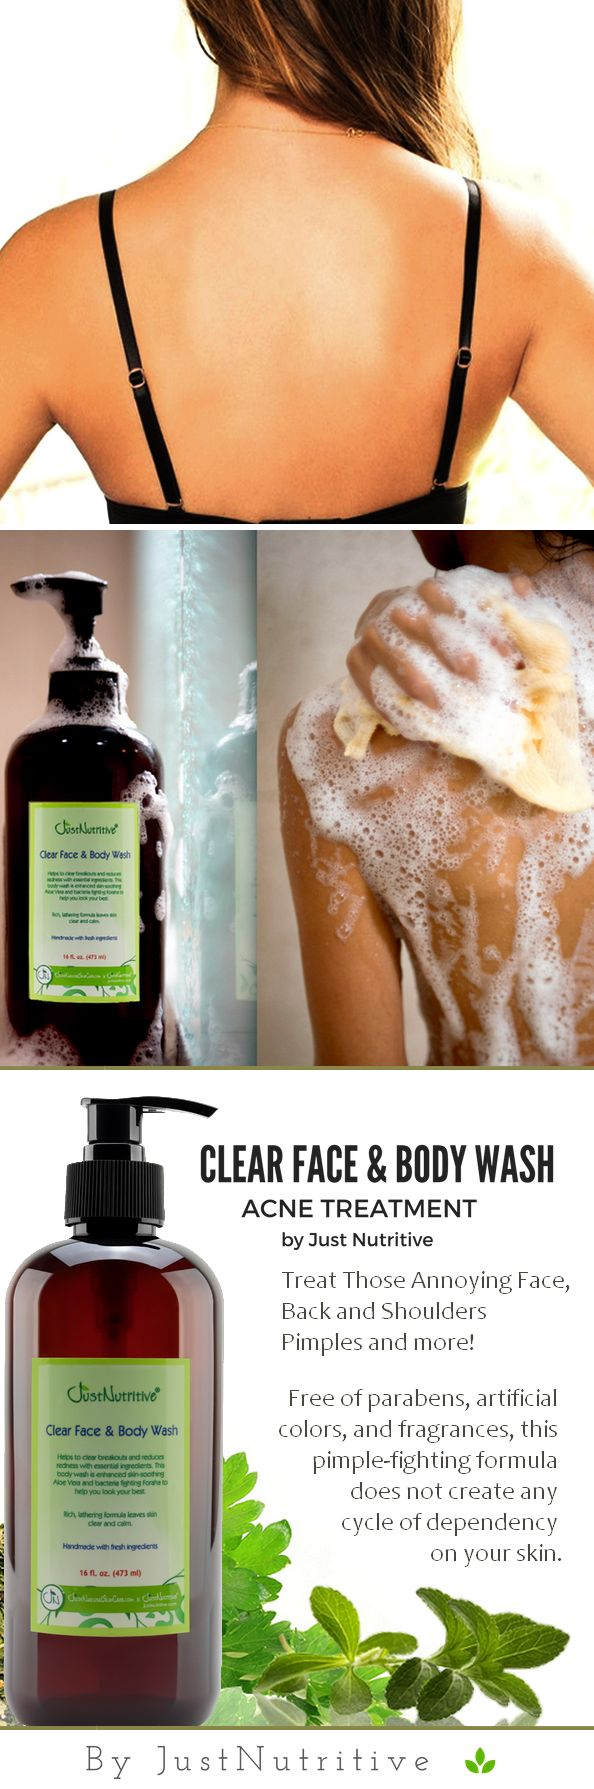 This face and body wash is the safest and most potent formula for helping and renewing breakout prone skin to transform it into beautiful, healthy and clear skin without any side effects.